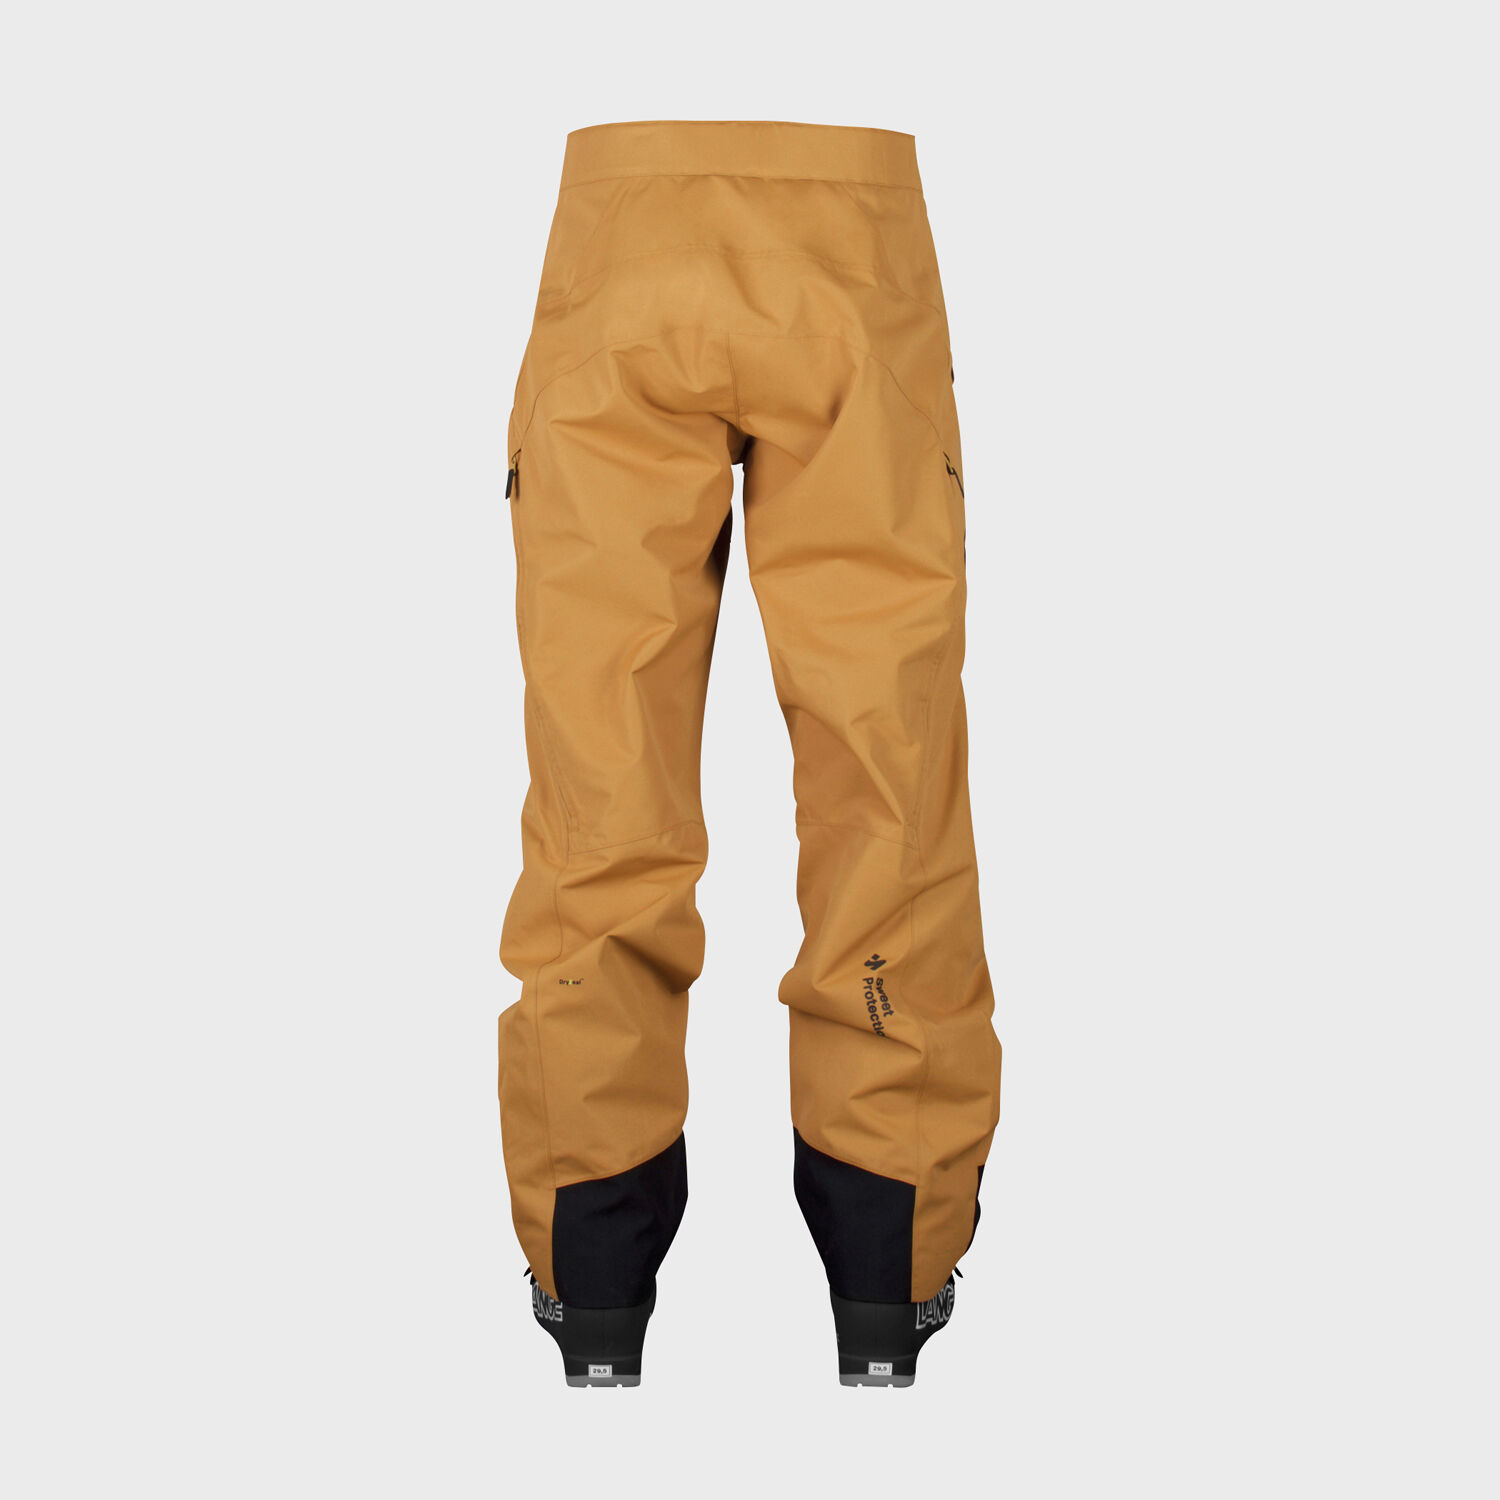 Sweet Protection Snow Pant Women Salvation Dryzeal Ins Pants